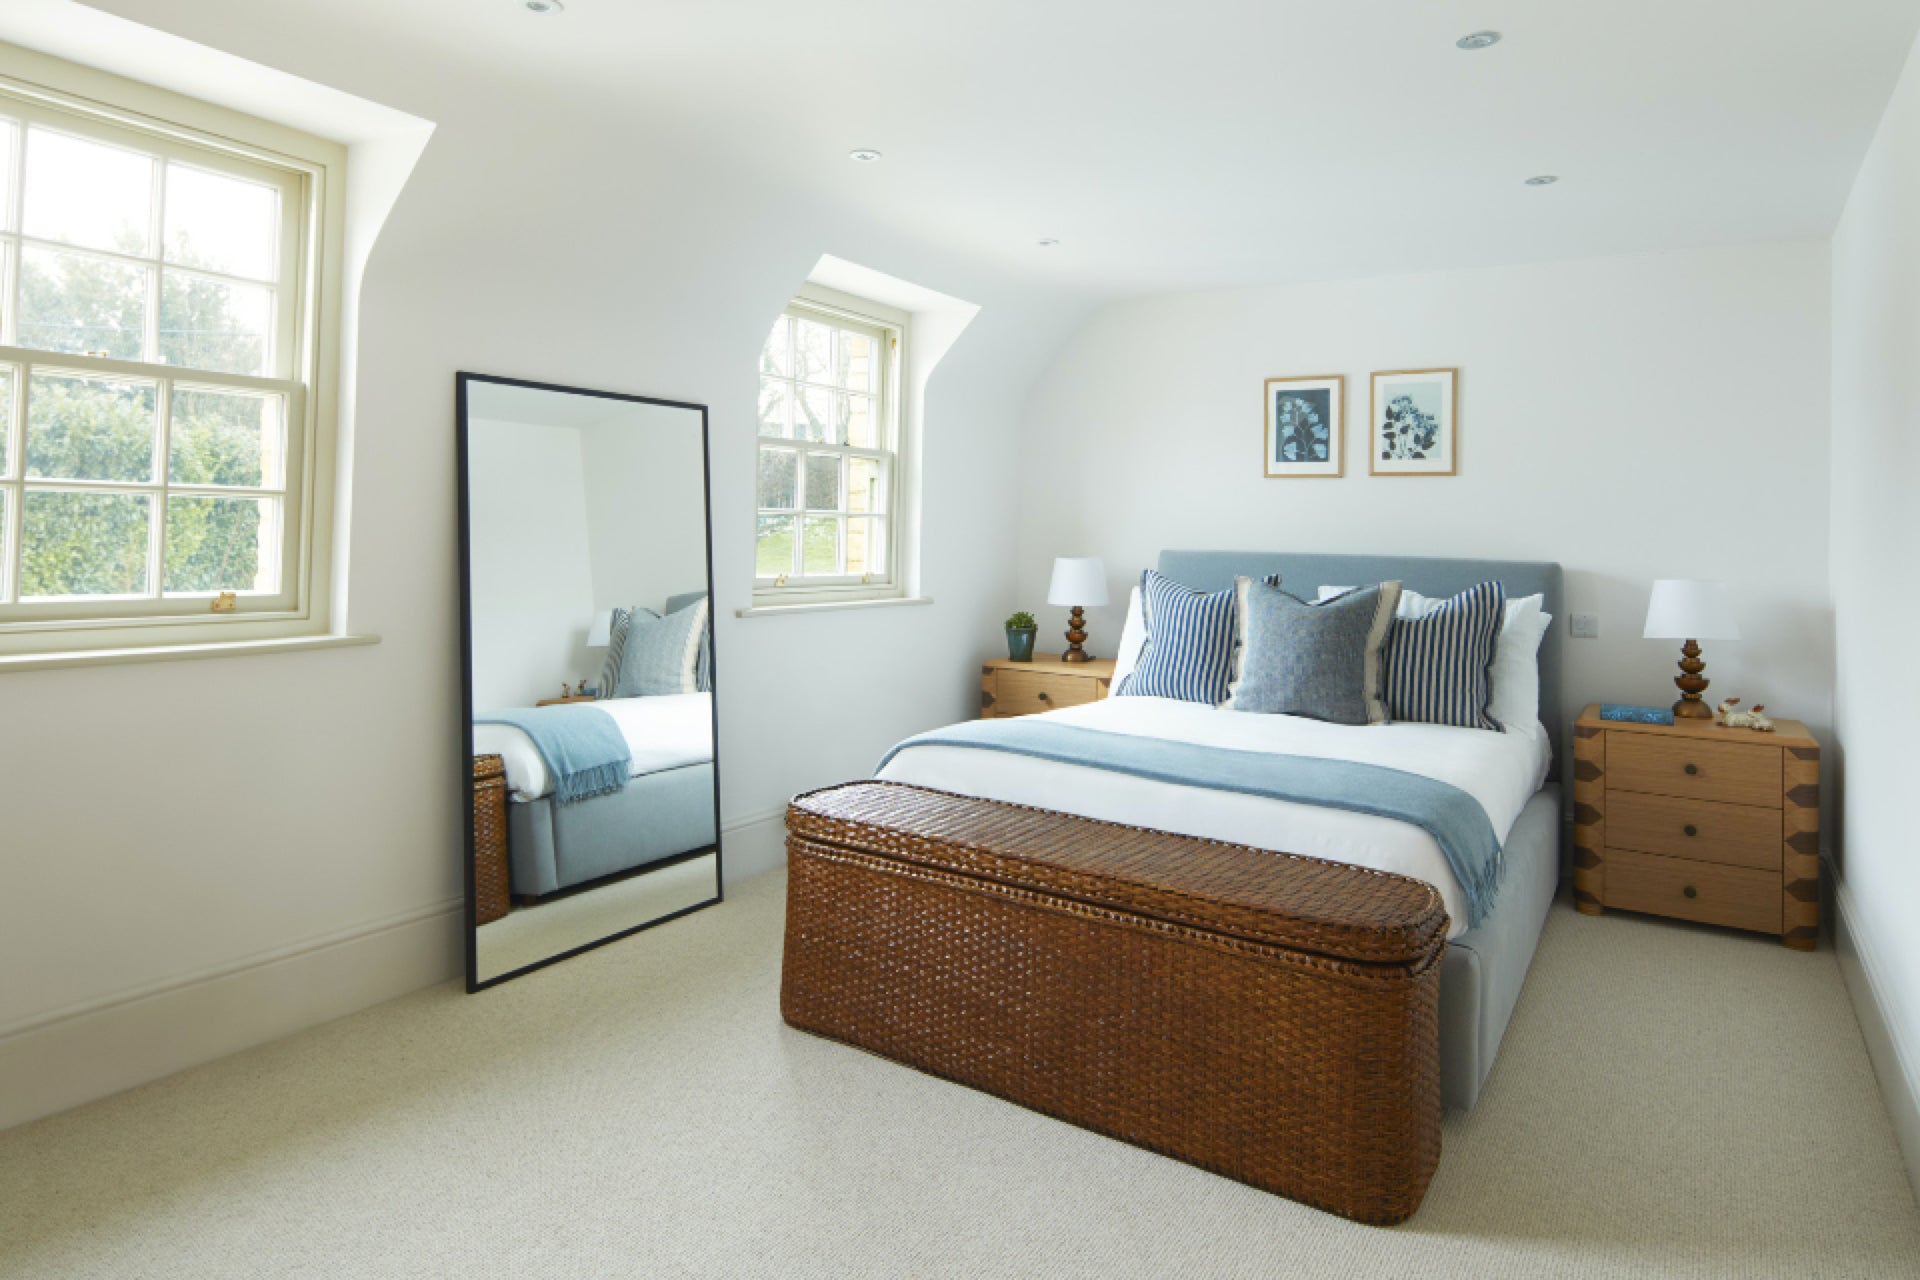 Second bedroom in competition to win a house